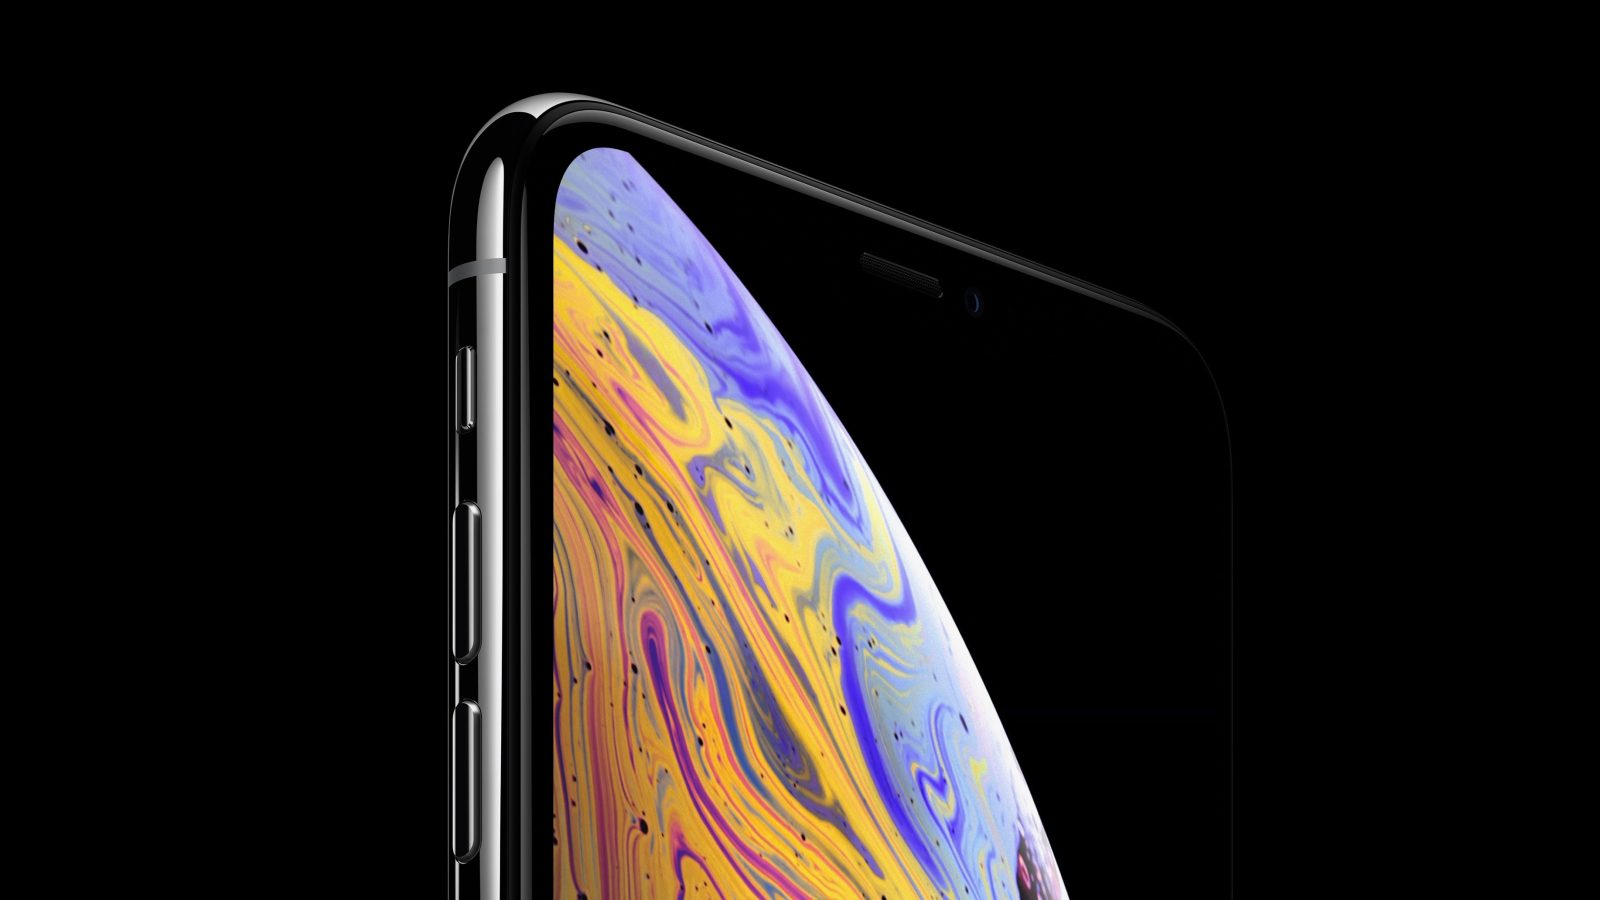 download the new iphone xs and iphone xs max wallpapers right here